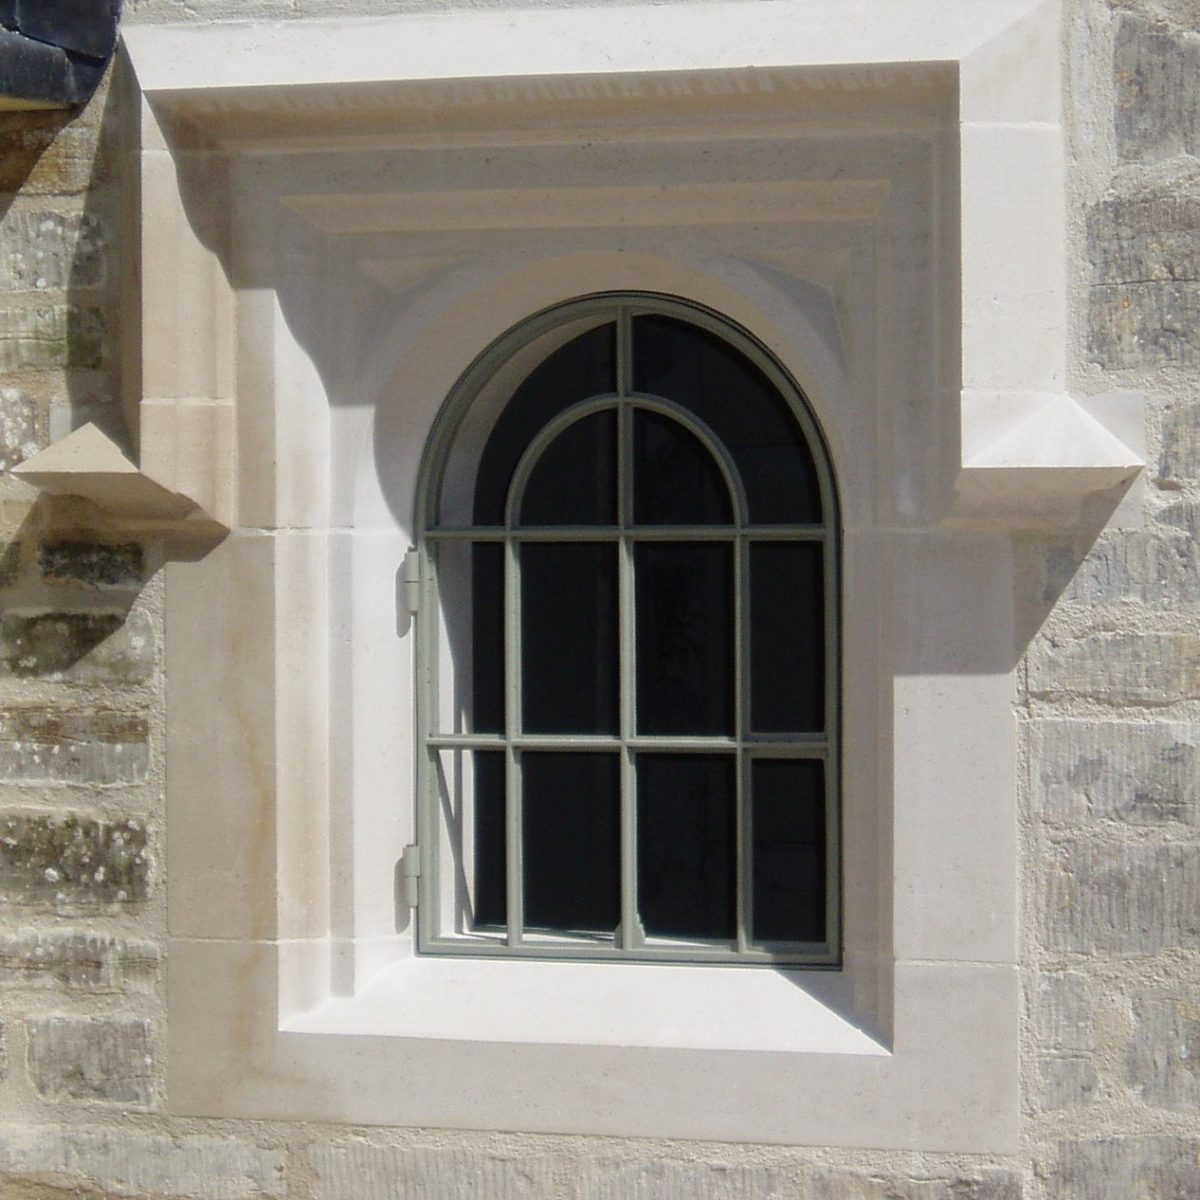 Cast Iron Windows for Extension